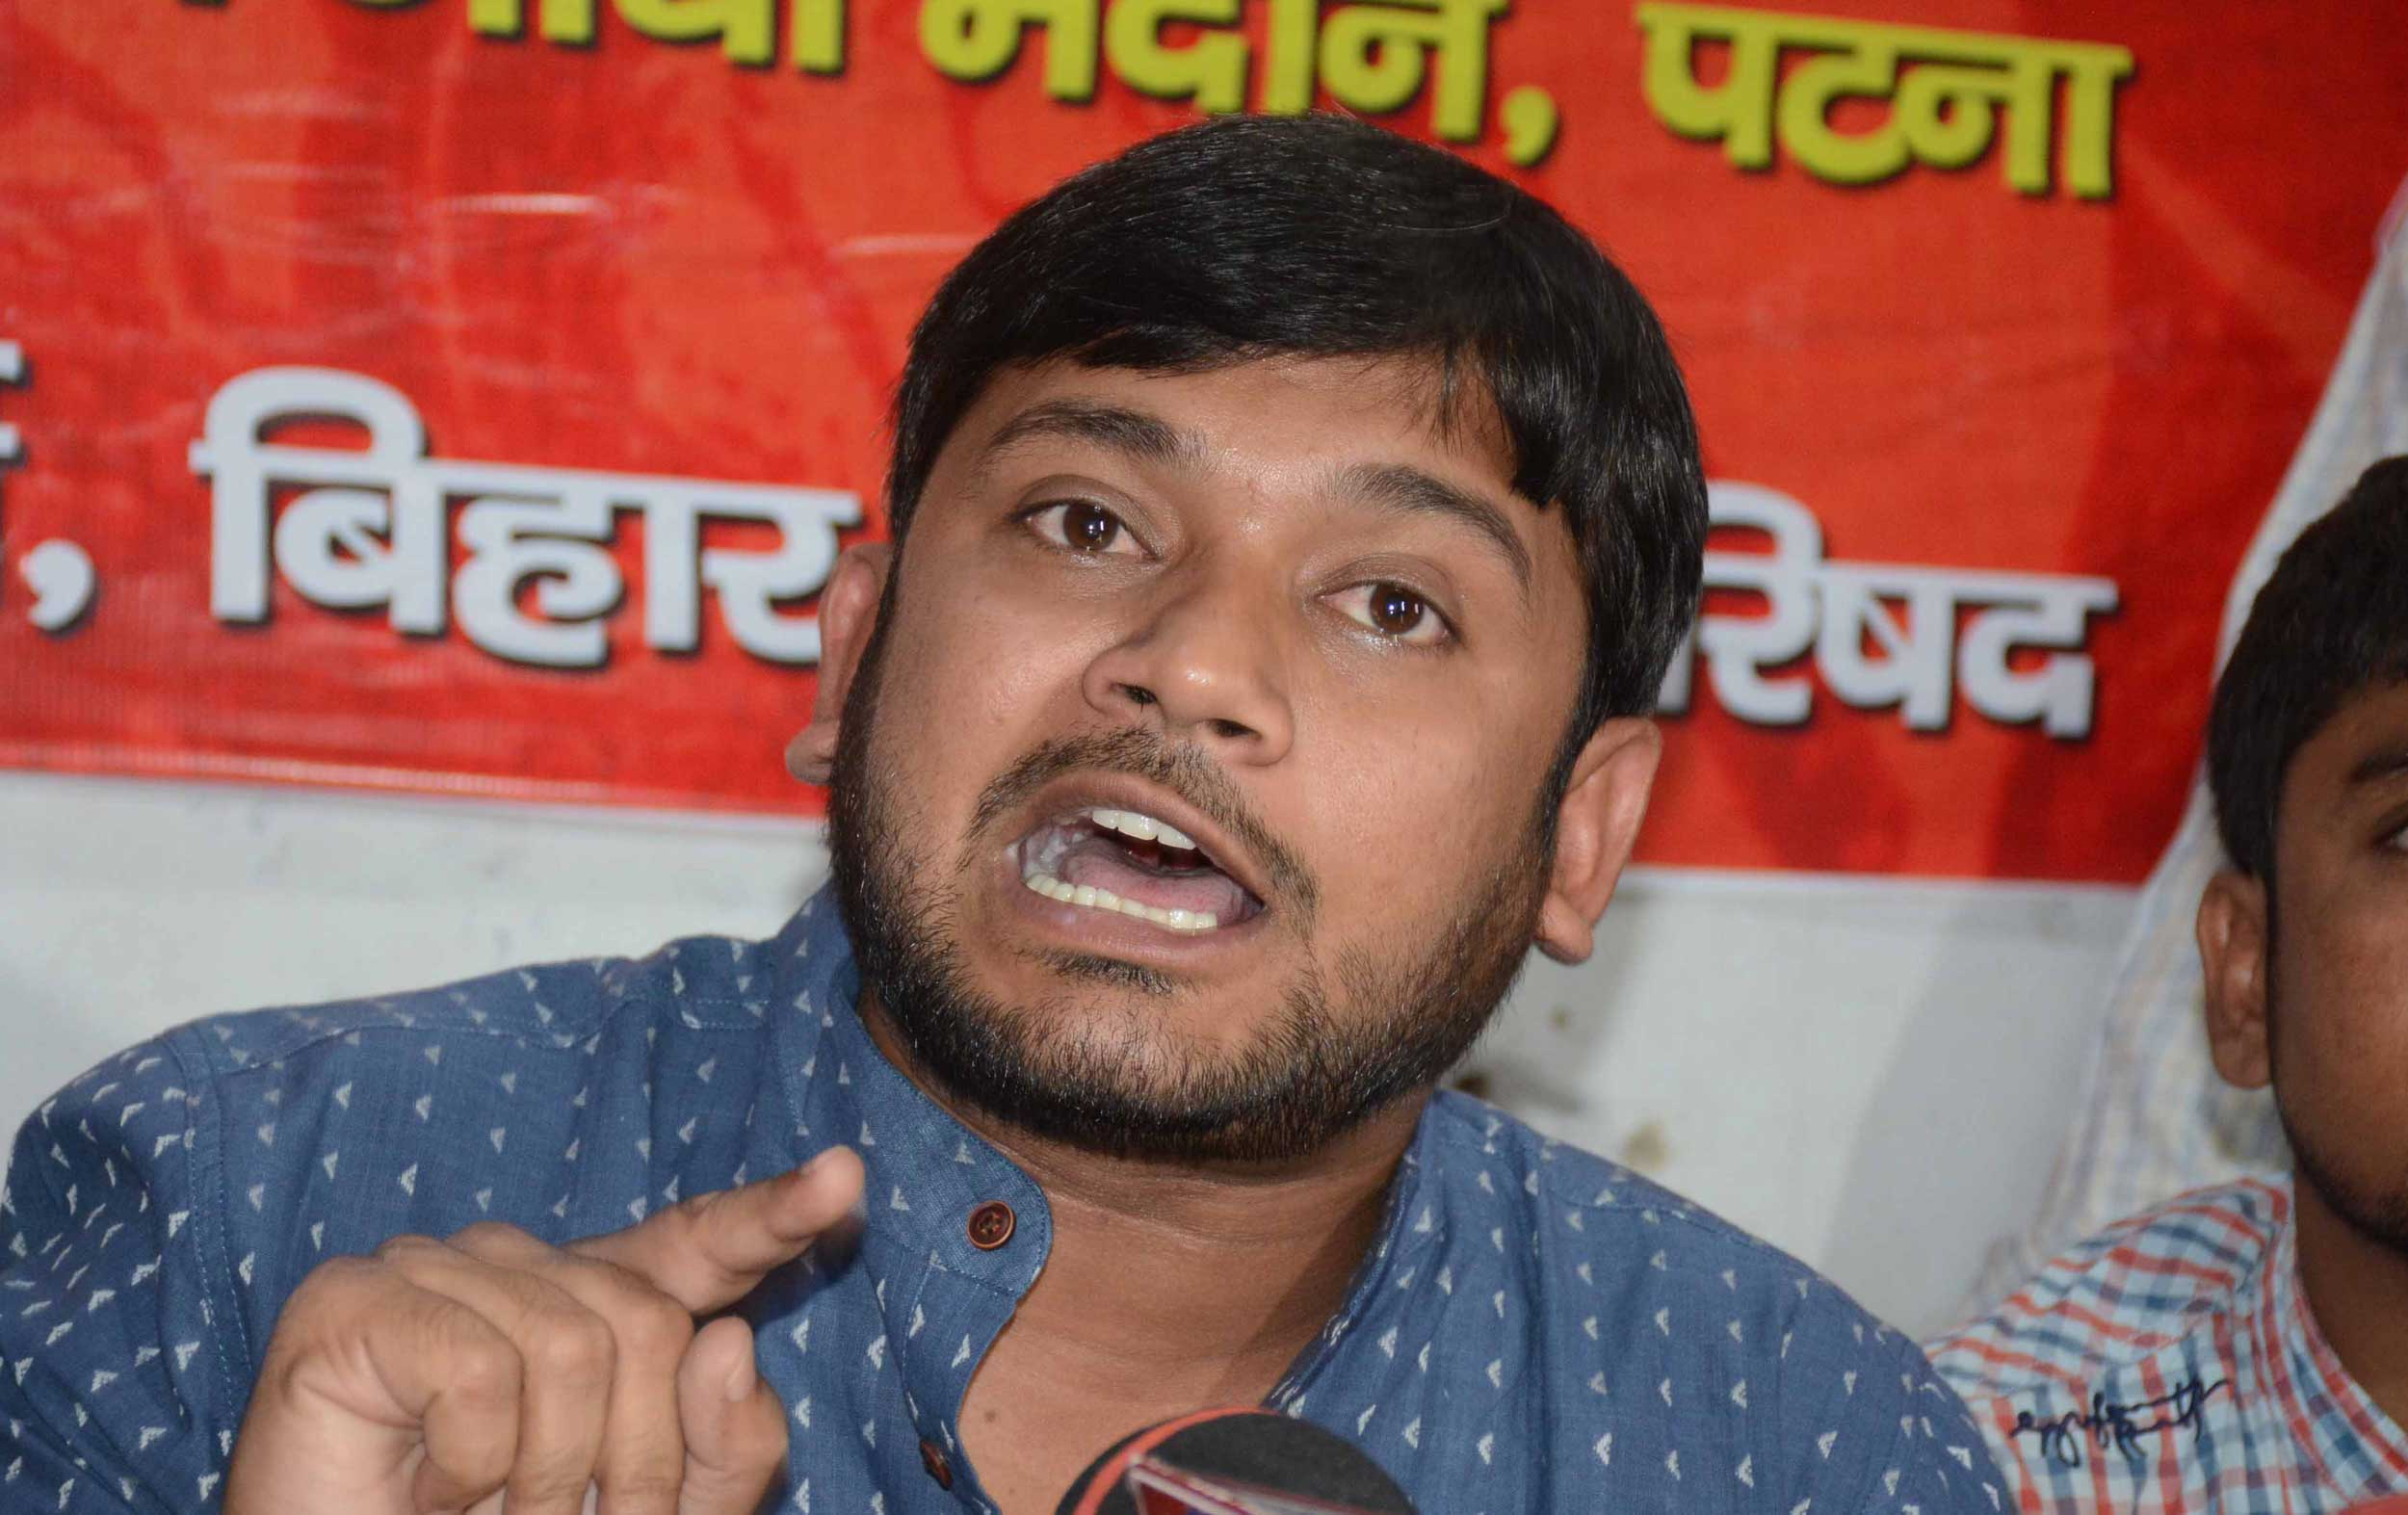 On January 14, the police had filed a chargesheet in the court against Kanhaiya Kumar and others, including former Jawaharlal Nehru University (JNU) students Umar Khalid and Anirban Bhattacharya.